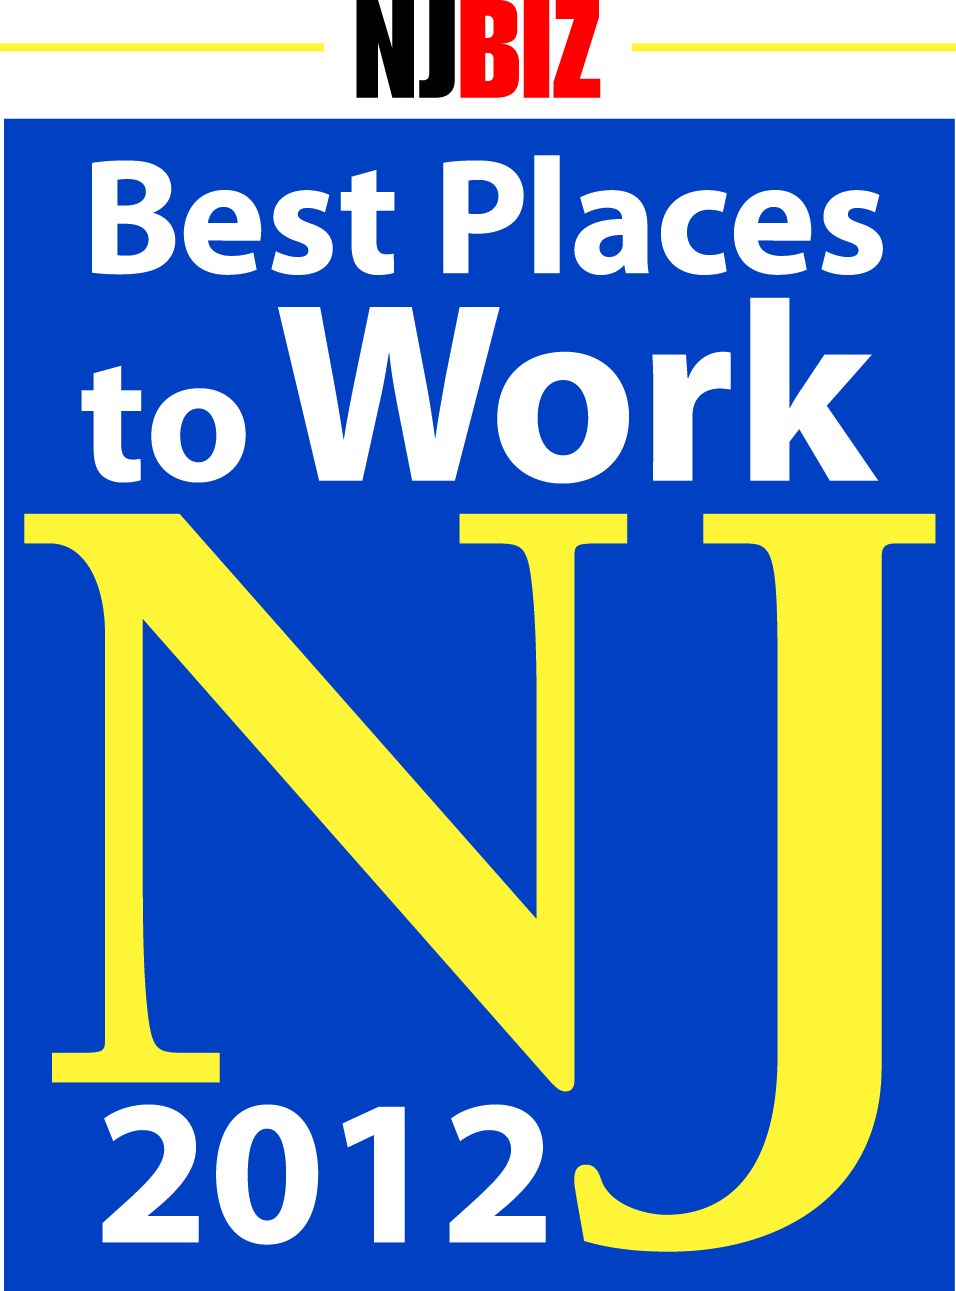 Sundance Vacations: Best Places to Work NJ 2012